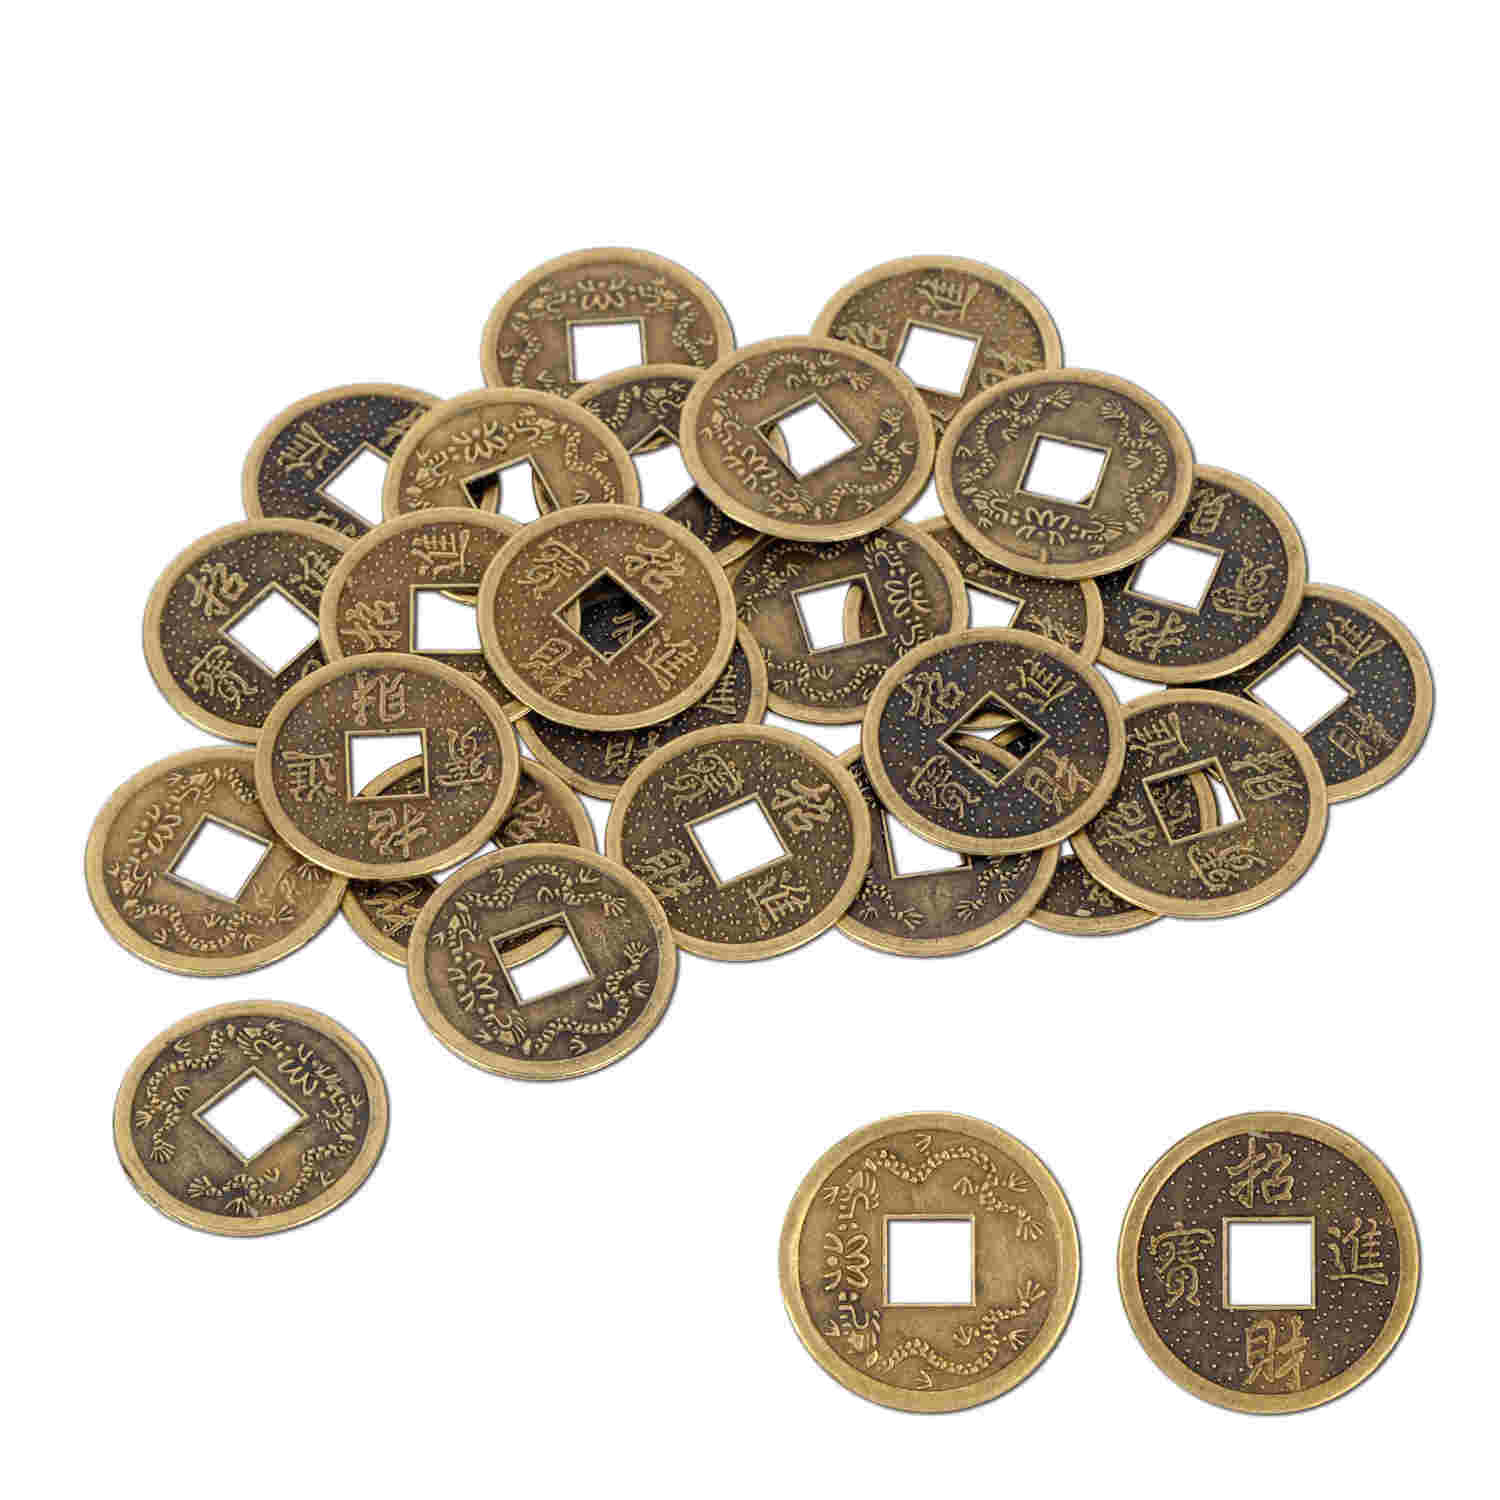 gold coins with a square hole in the middle with Chinese writing on them